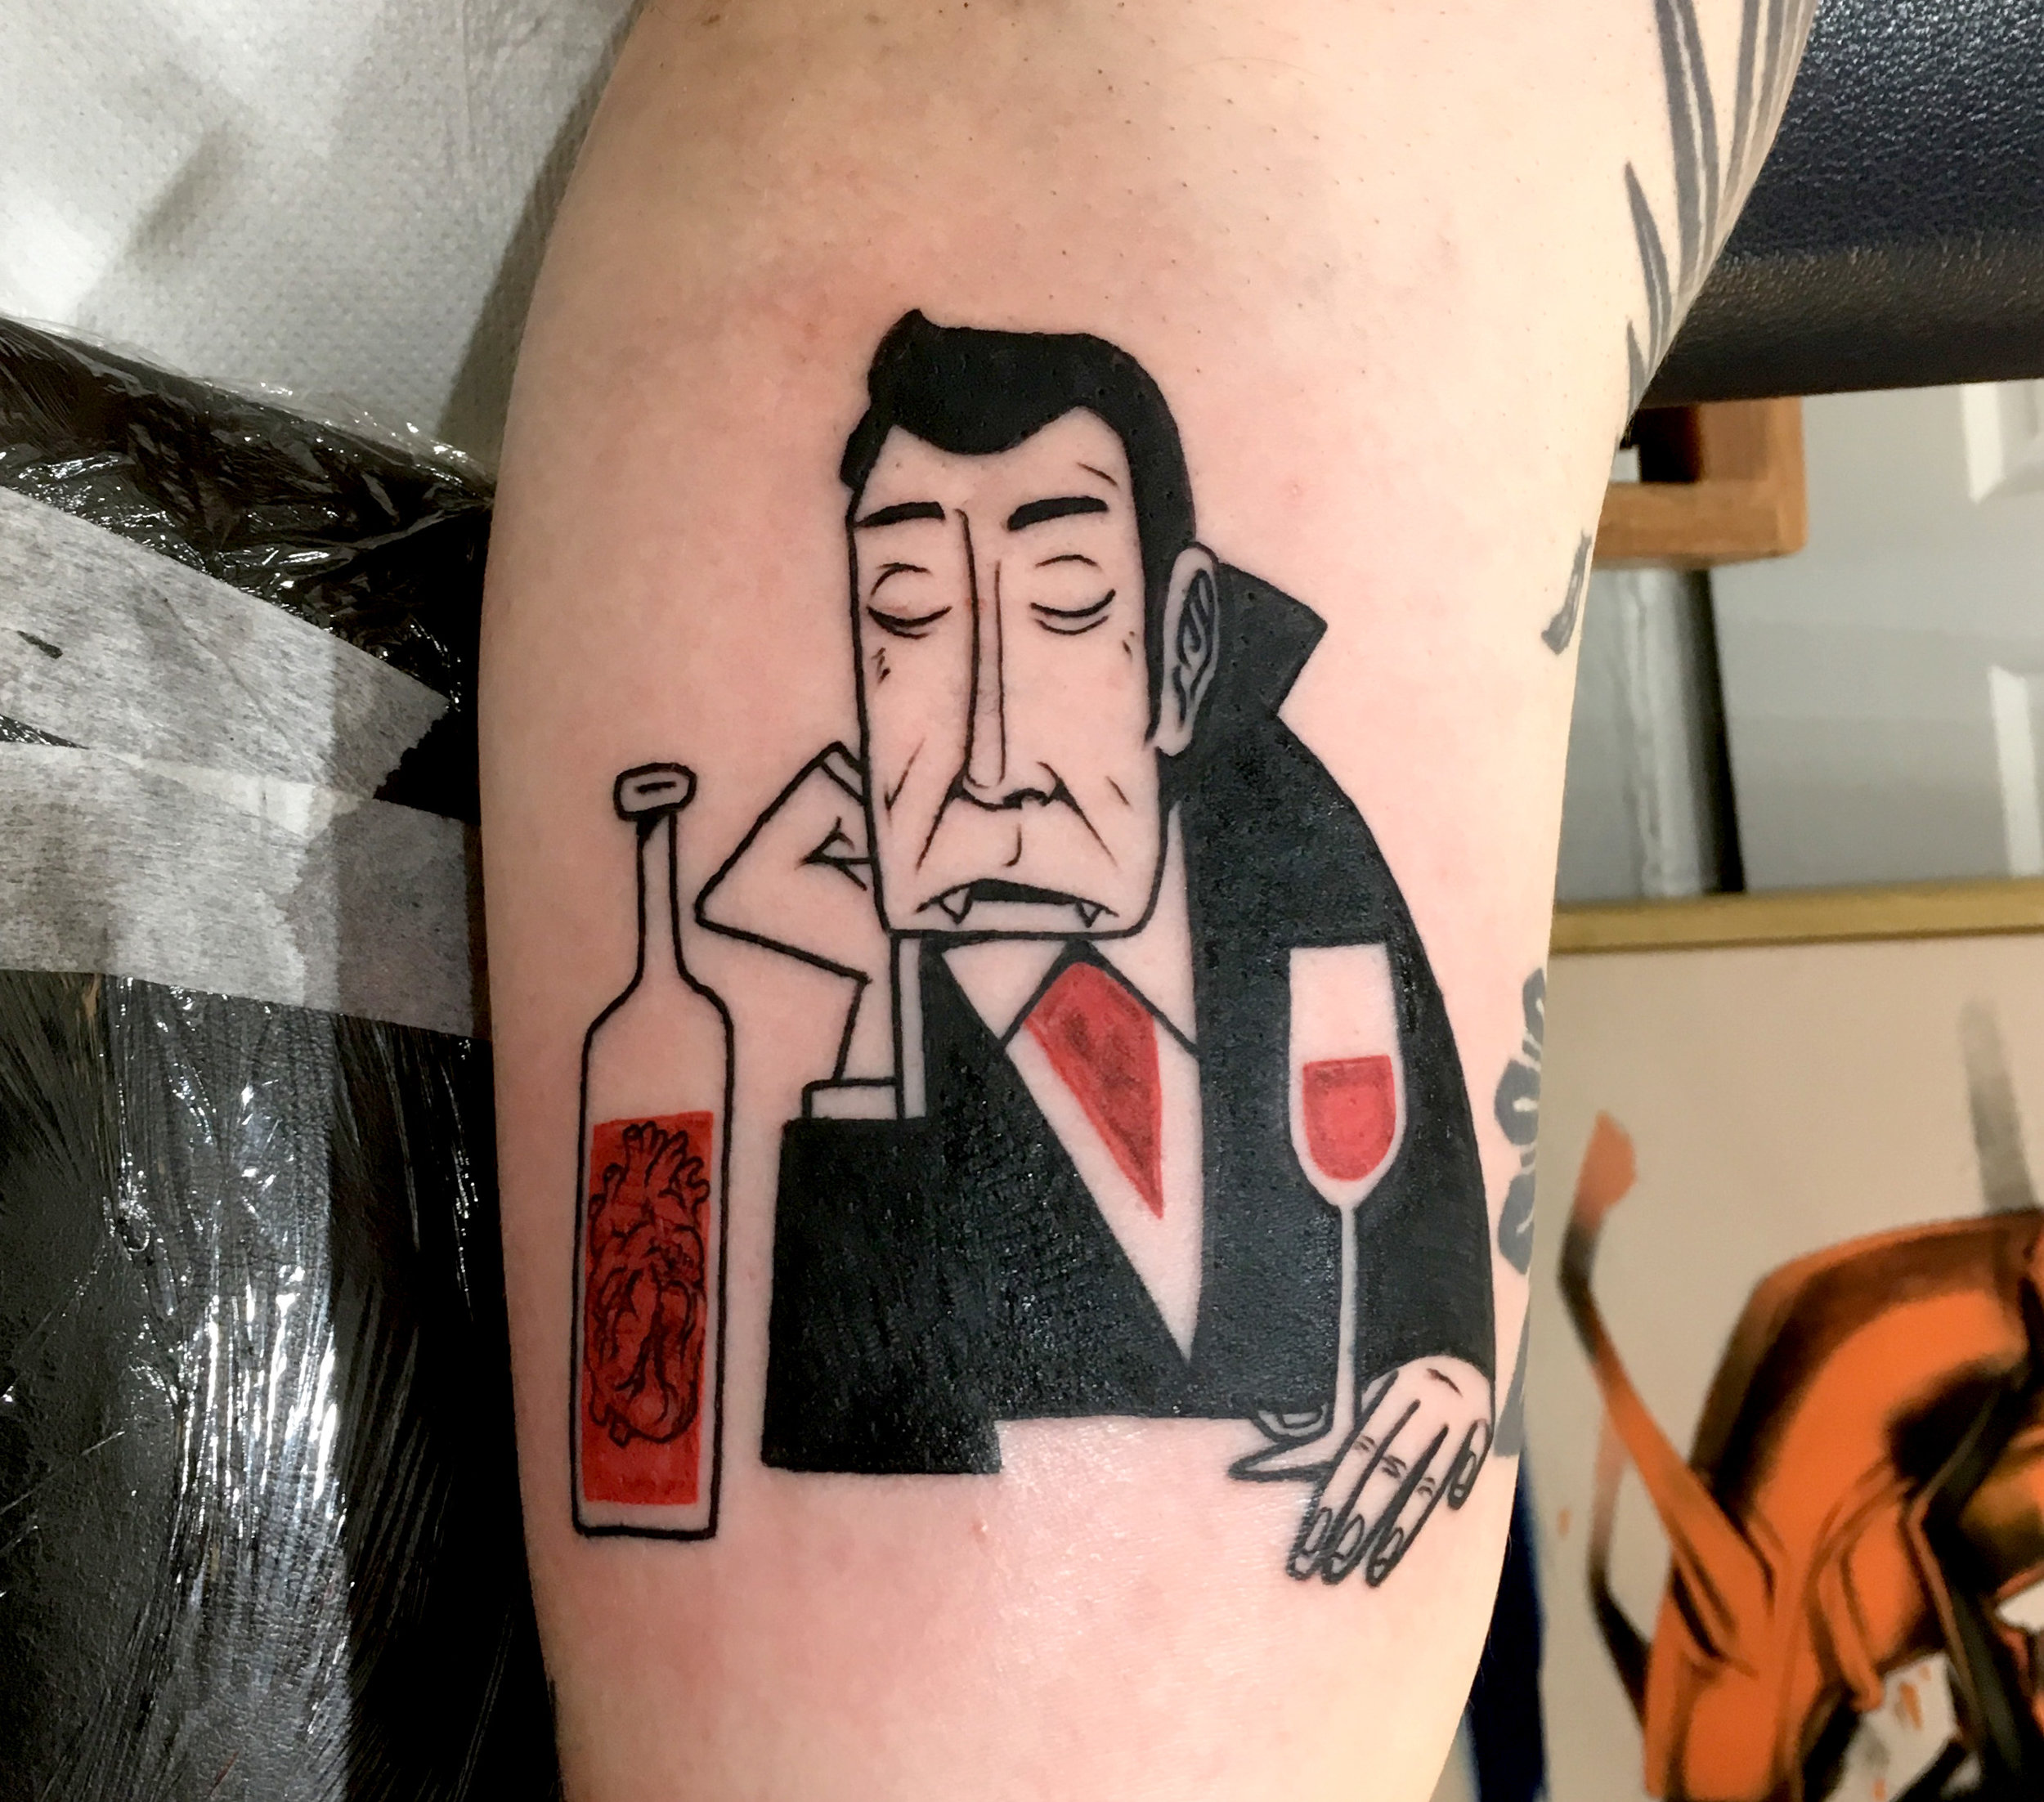 57 drunkula tattoo sepr.jpg